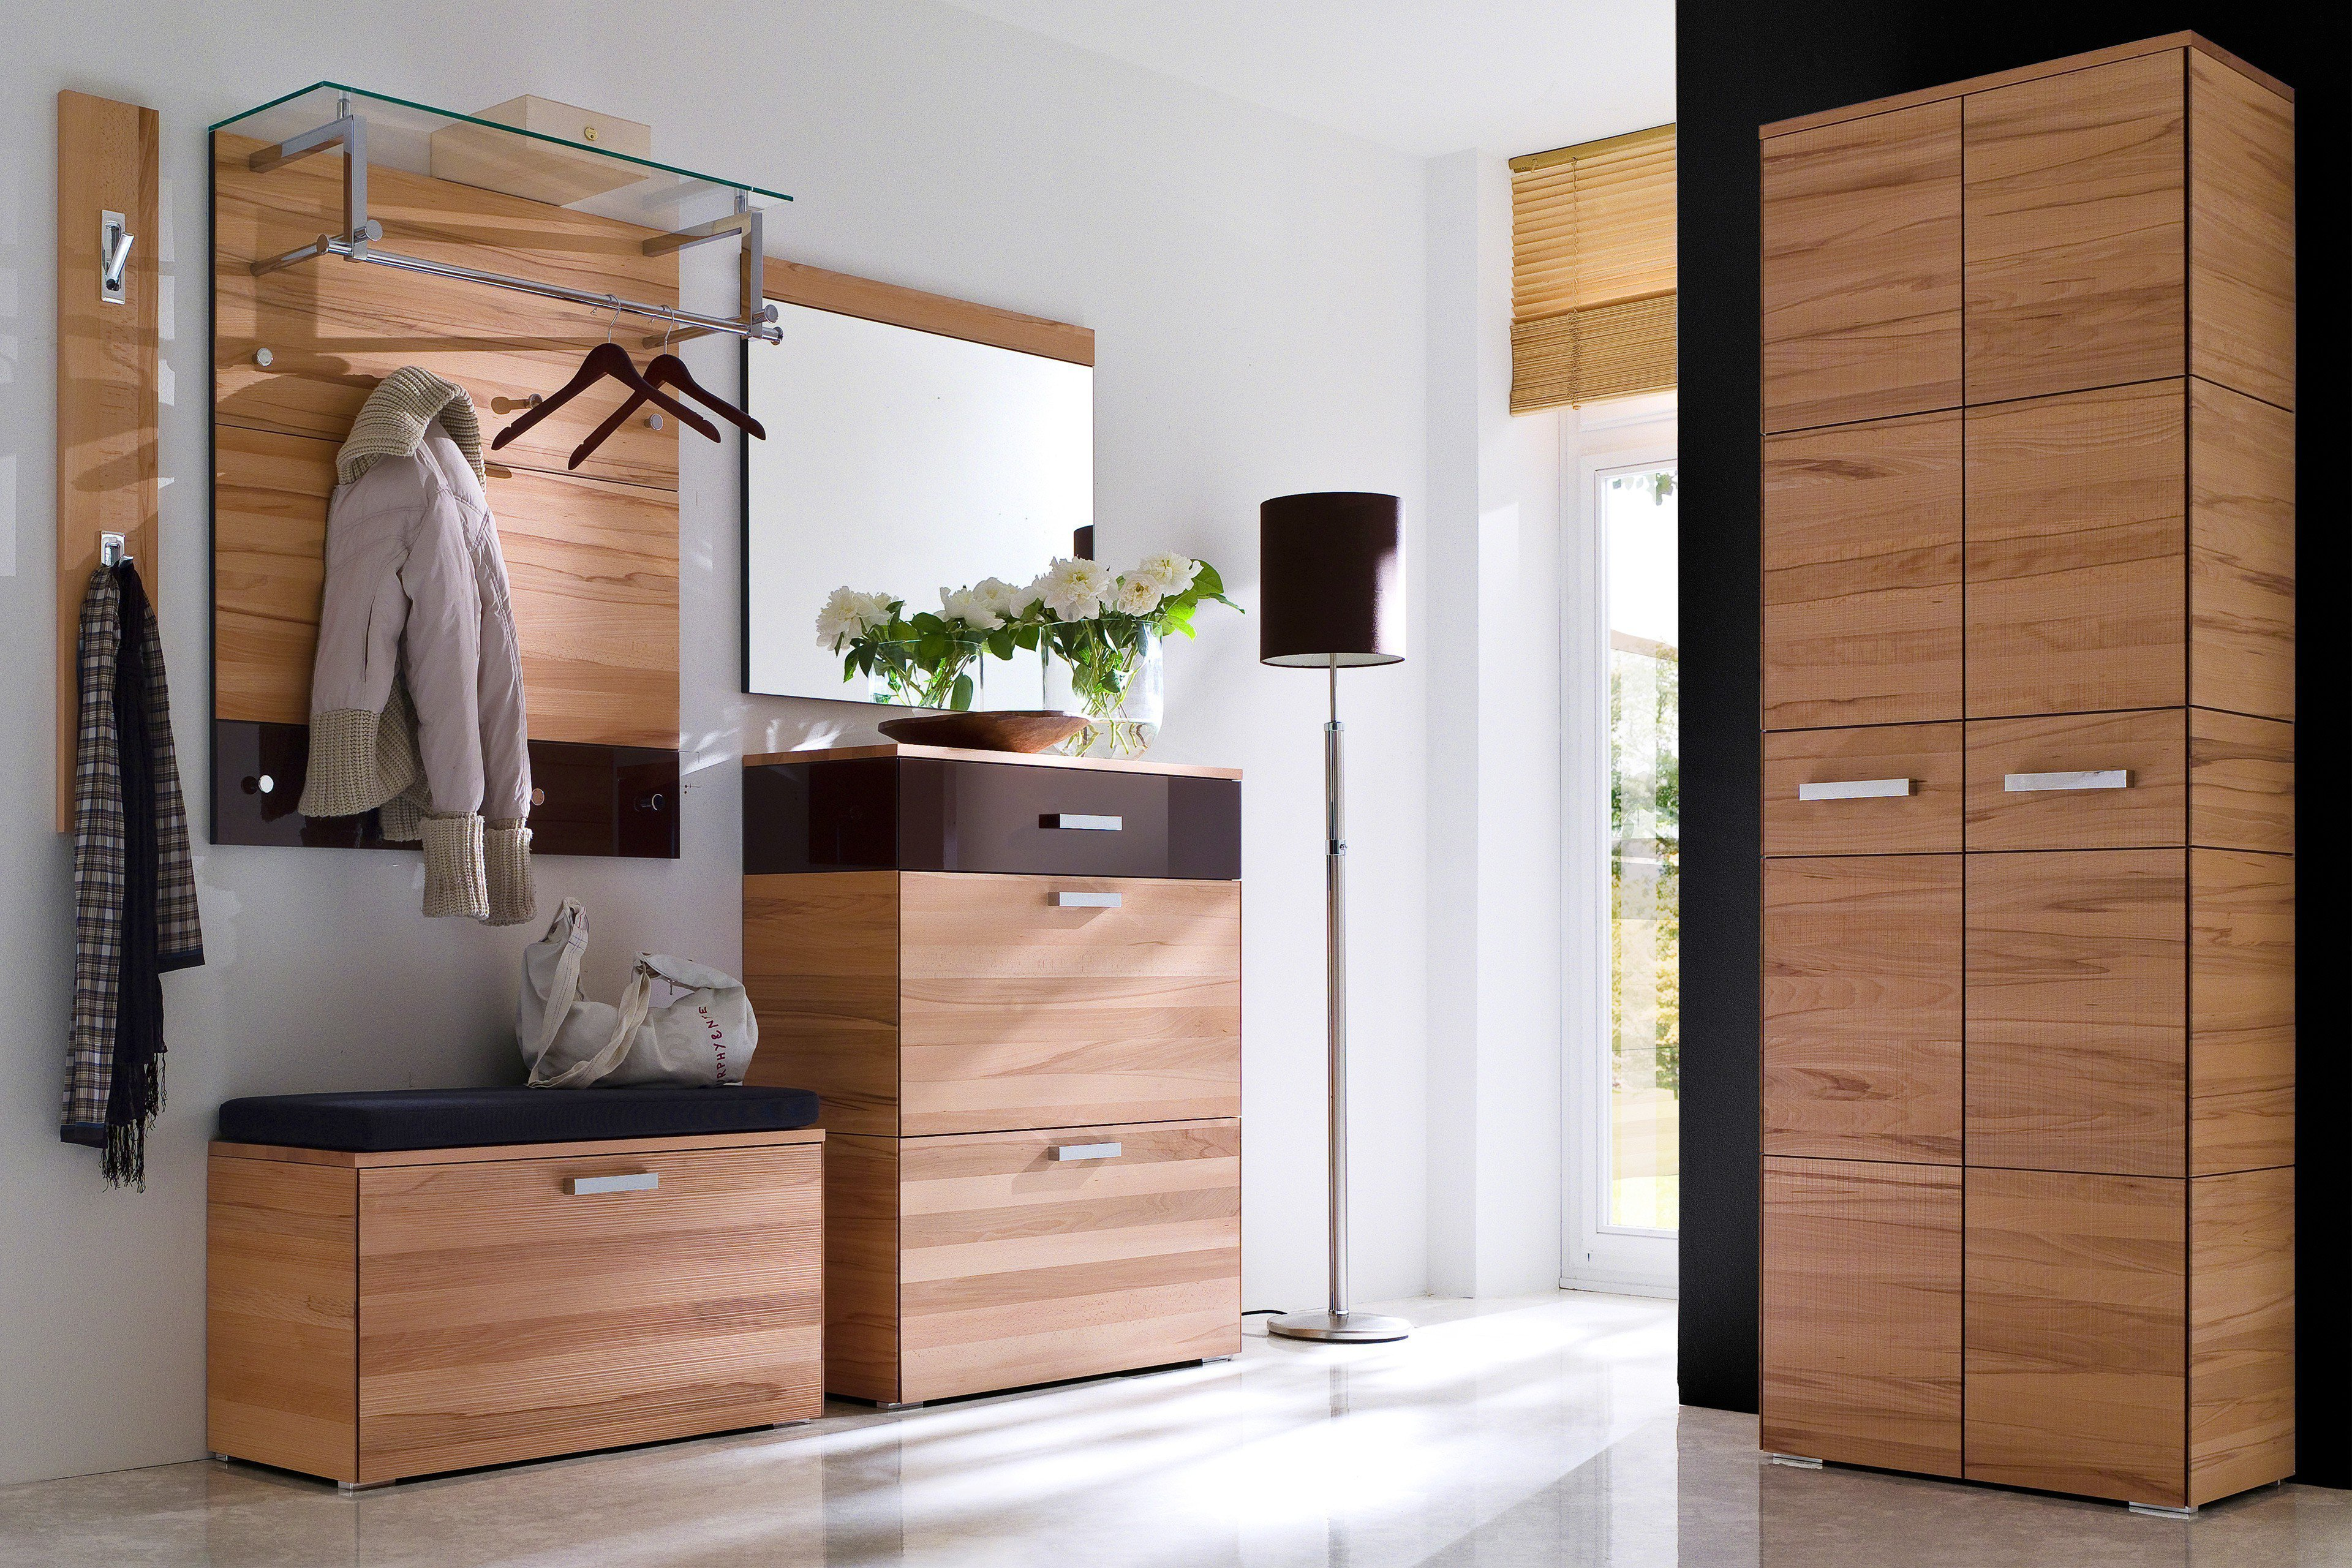 wittenbreder garderobe massello kernbuche braun m bel letz ihr online shop. Black Bedroom Furniture Sets. Home Design Ideas